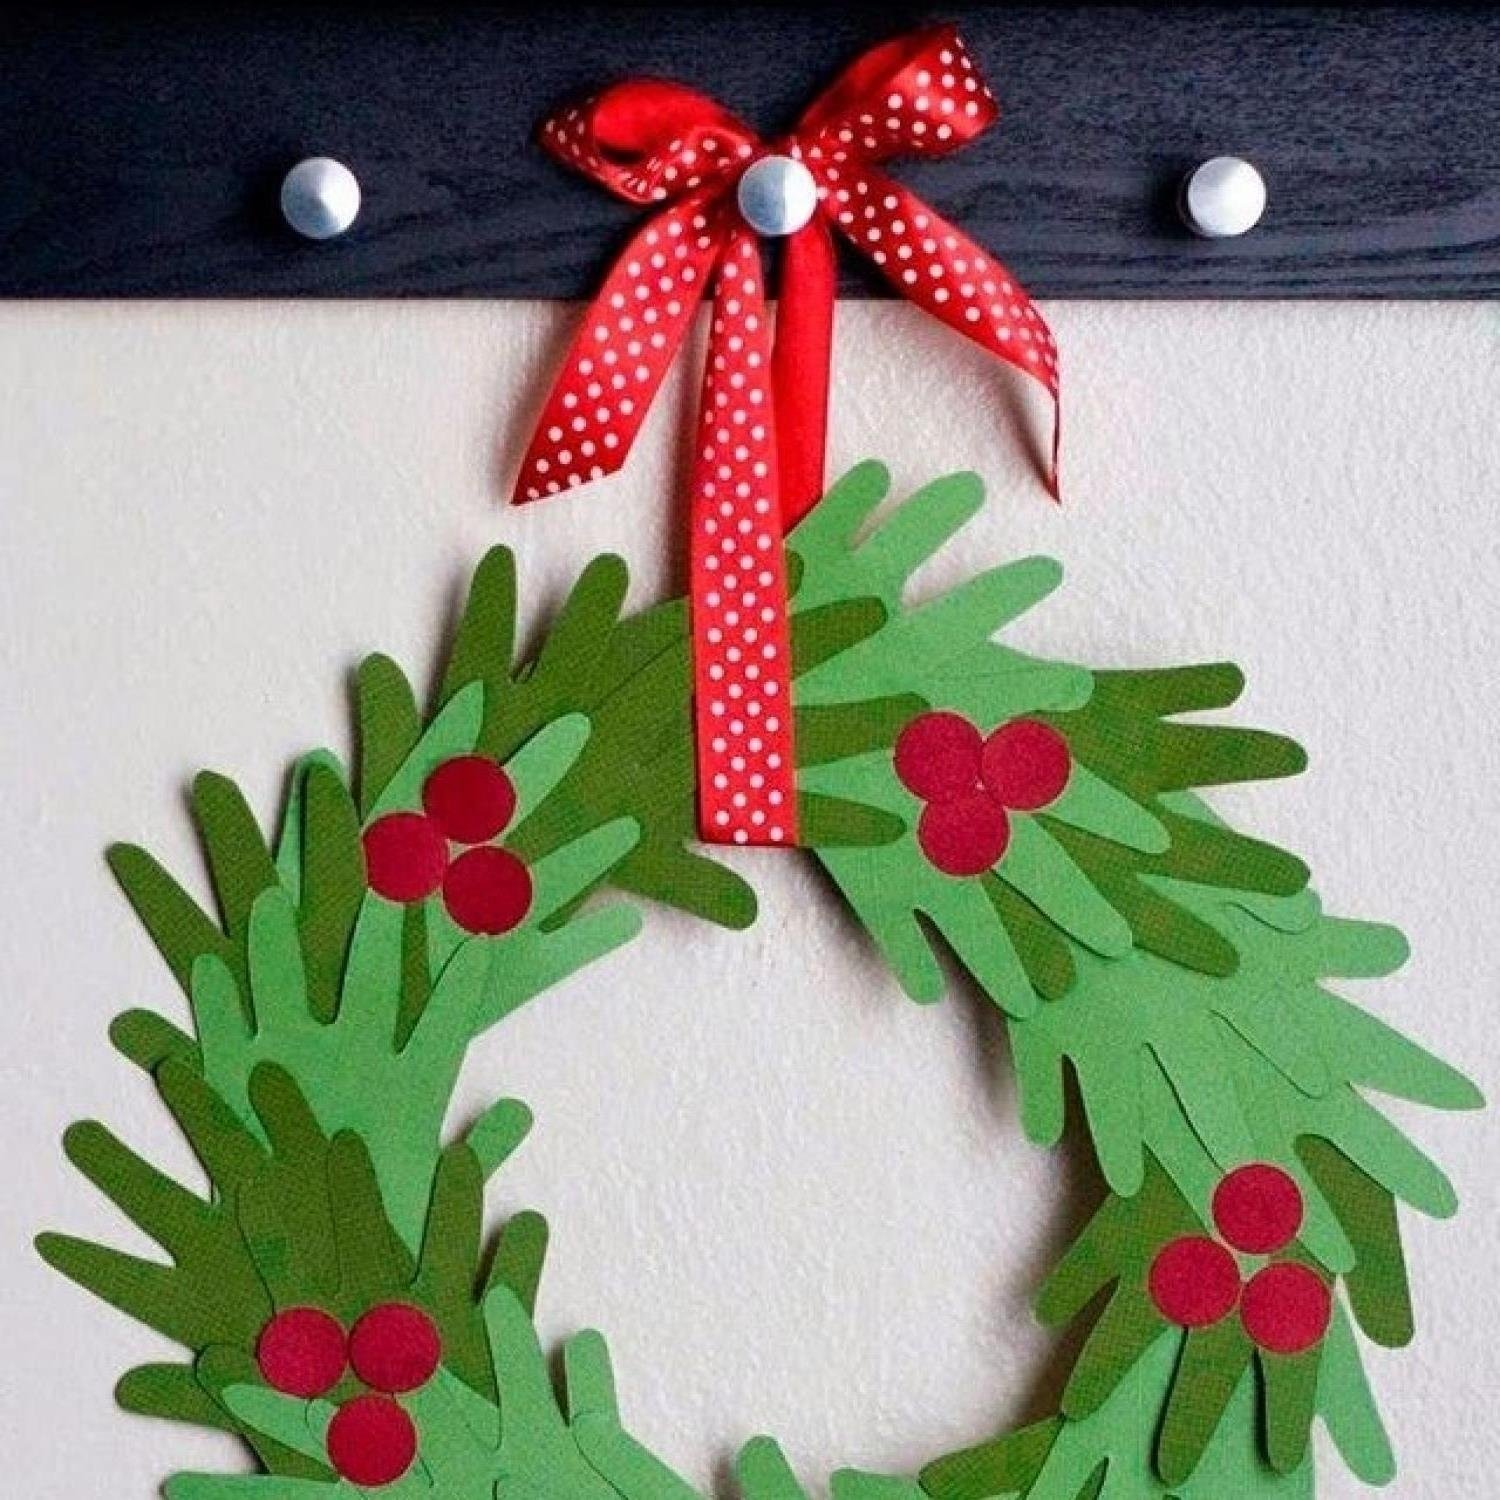 10 Attractive Christmas Pictures Ideas For Kids christmas crafts for kids find craft ideas 1 2020